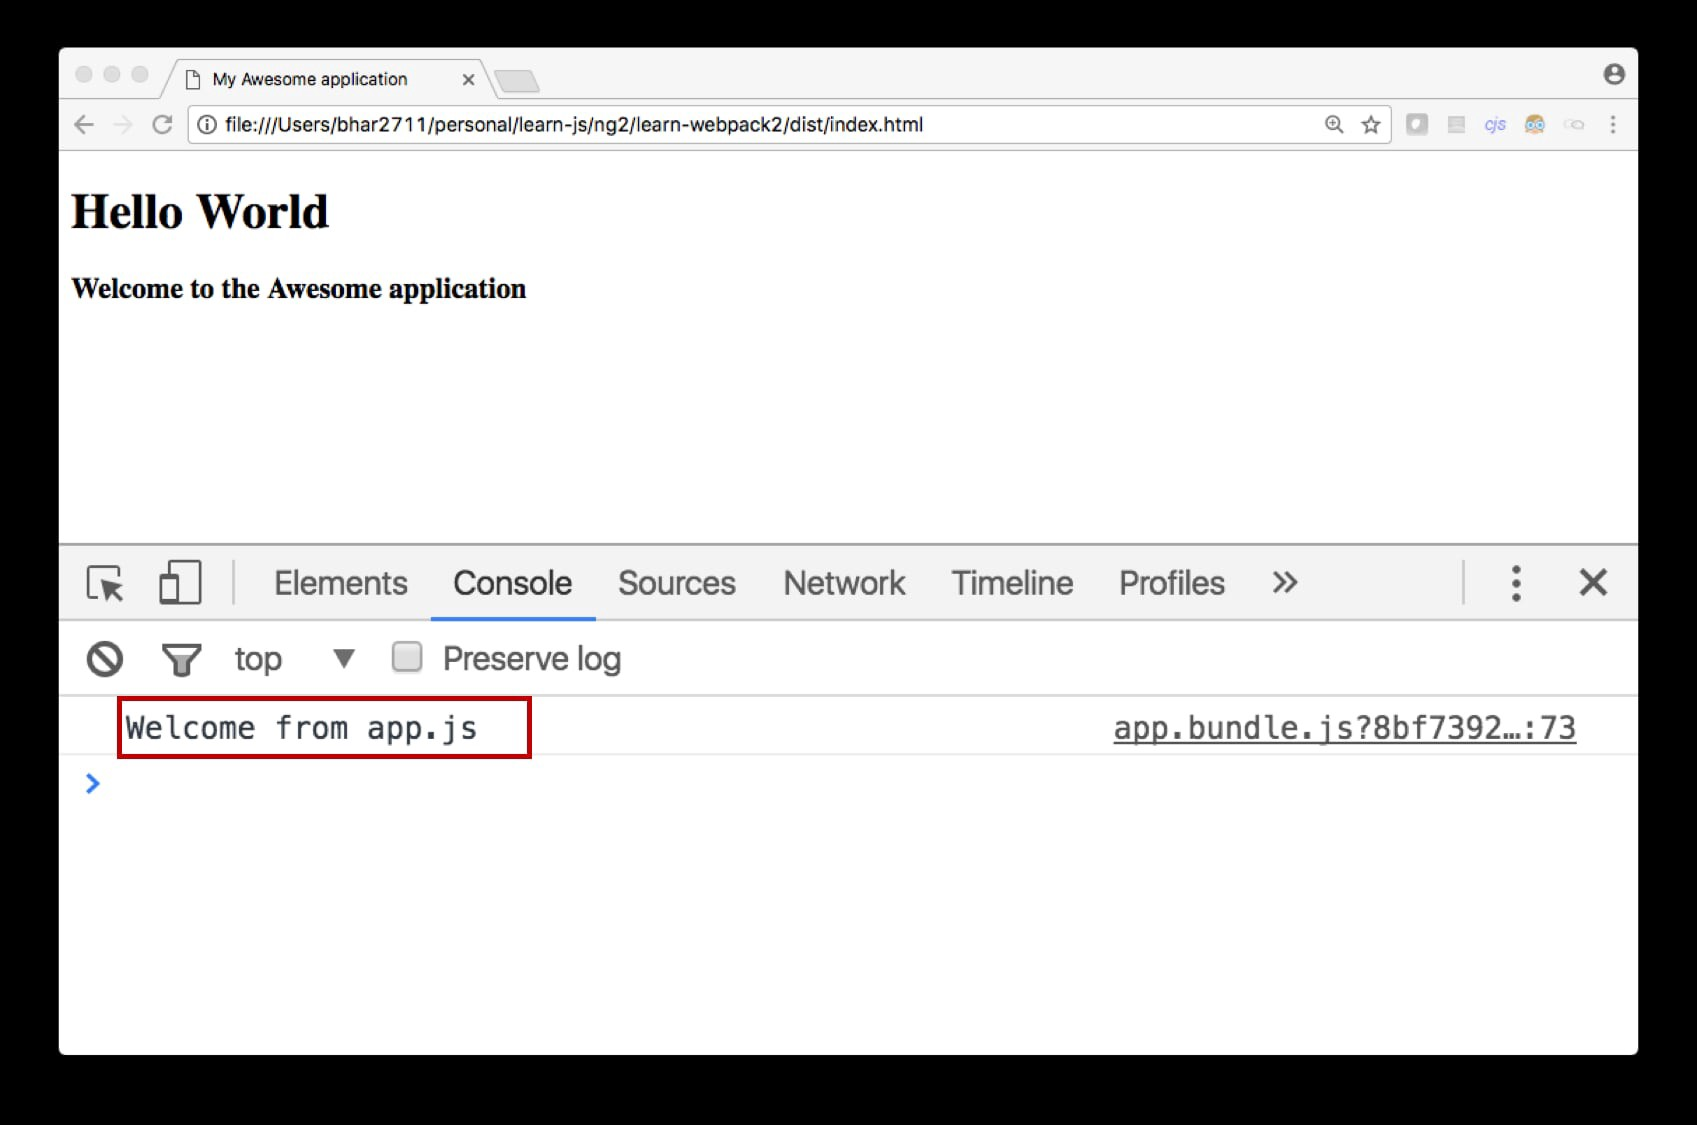 using html-webpack-plugin to generate index html - A